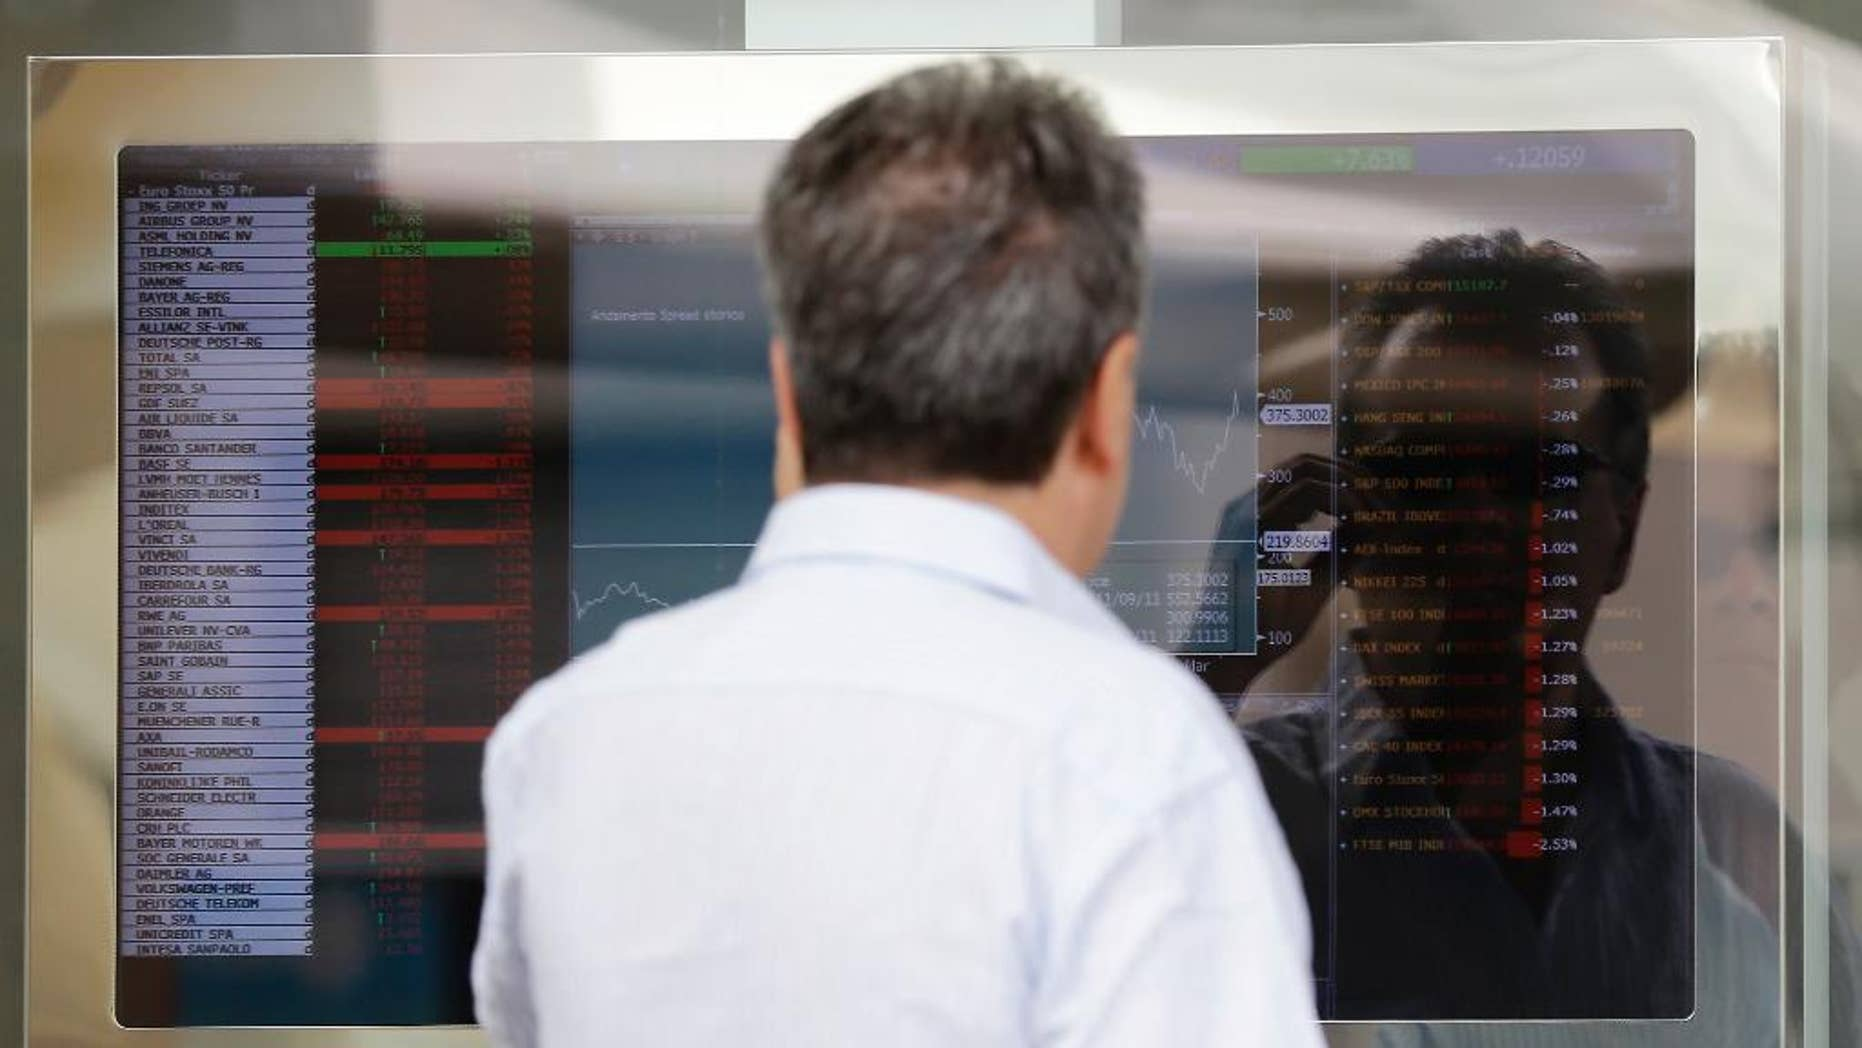 A man watches a stock exchange board monitor outside a bank, in Milan, Italy, Wednesday, Aug. 6, 2014. Pressure is building on Premier Matteo Renzi to push through reforms to restart Italy's economy after the national statistics agency reported that the economy had slipped back into recession. The ISTAT statistic agency on Wednesday estimated that the Italian economy contracted by 0.2 percent in the second quarter, the second straight quarter of decline. Analyst surveys had forecast slight growth. (AP Photo/Antonio Calanni)